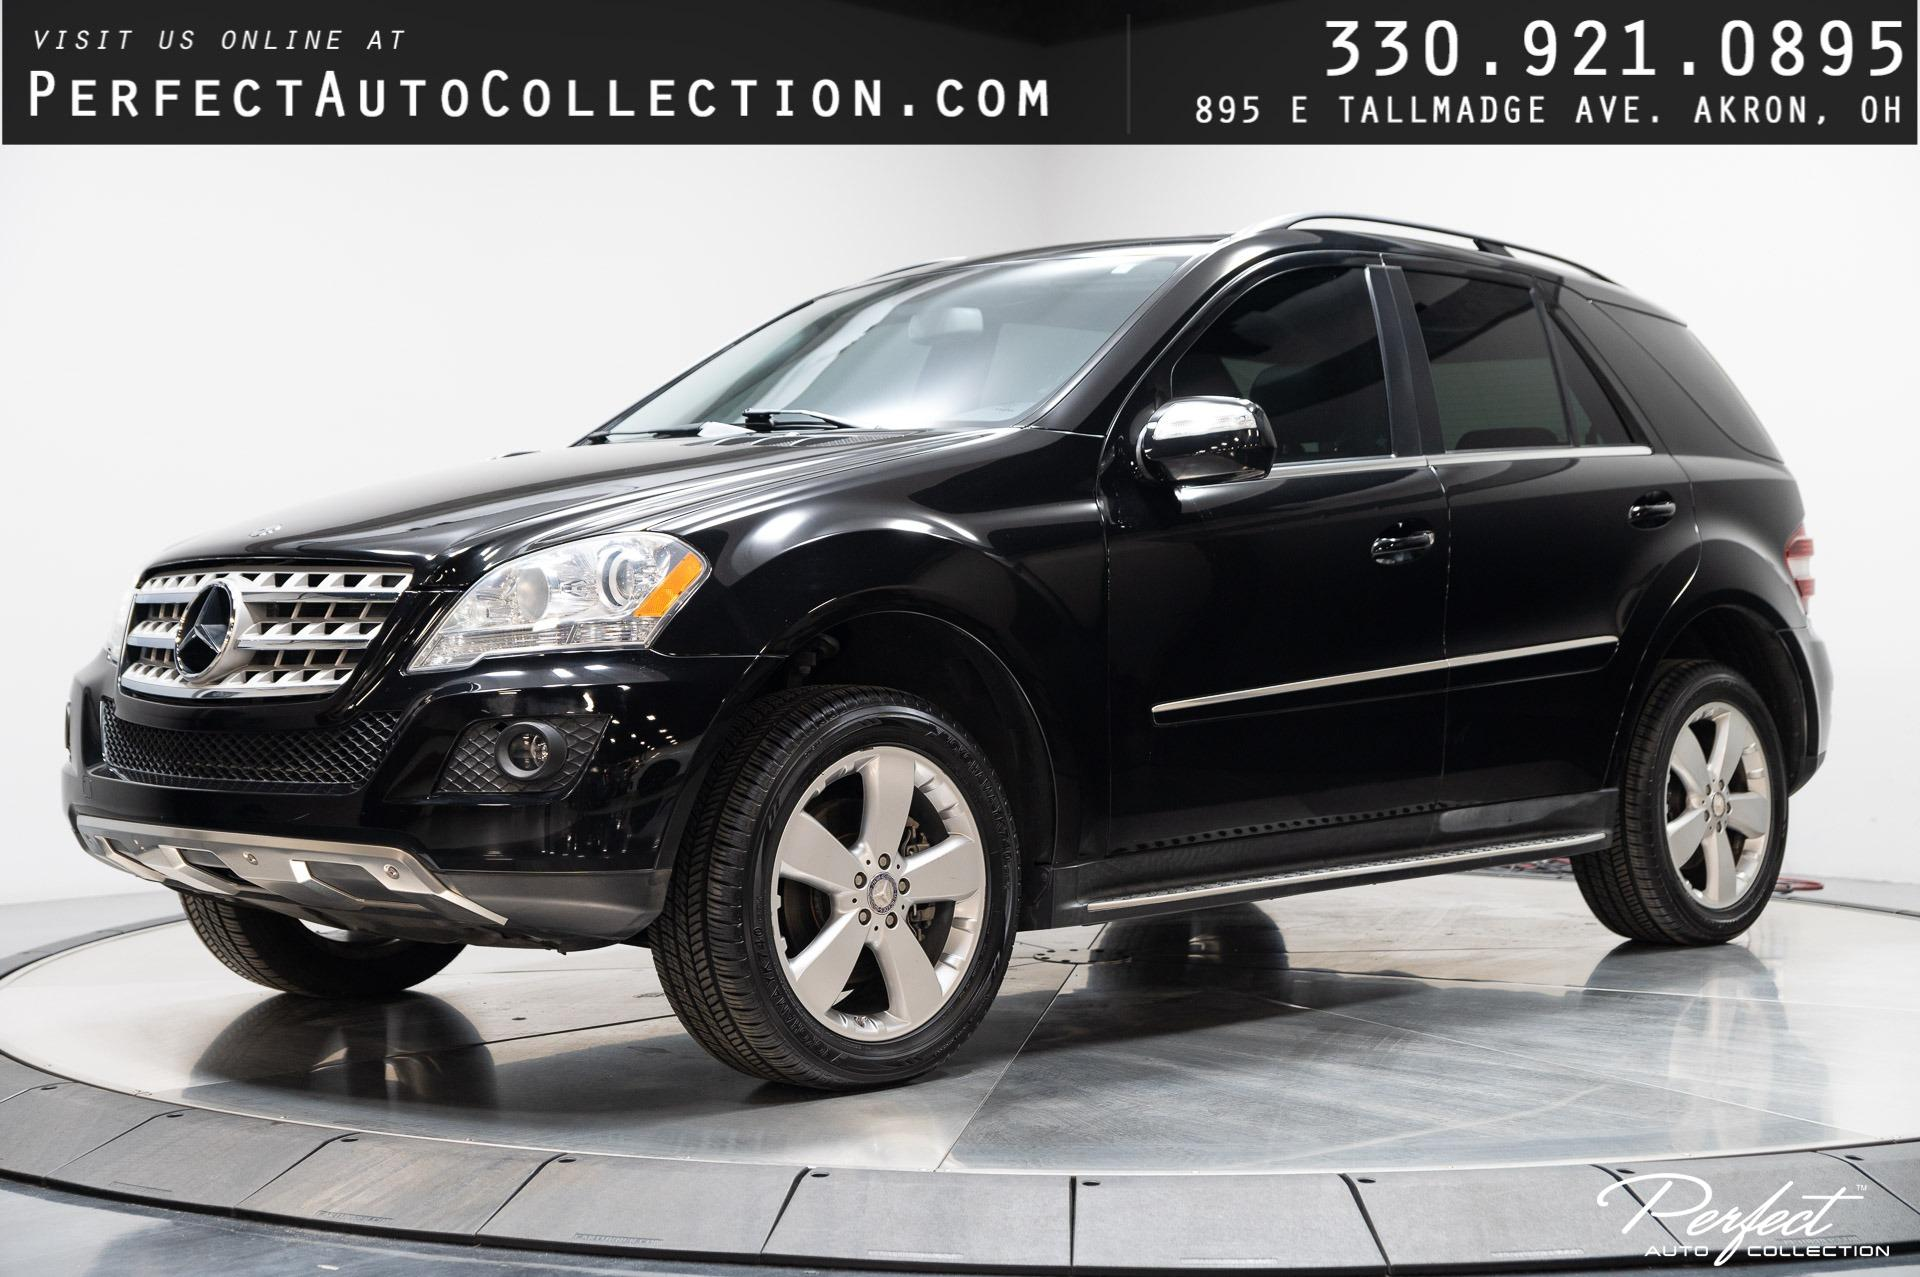 Used 2010 Mercedes-Benz M-Class ML 350 4MATIC for sale $12,695 at Perfect Auto Collection in Akron OH 44310 1